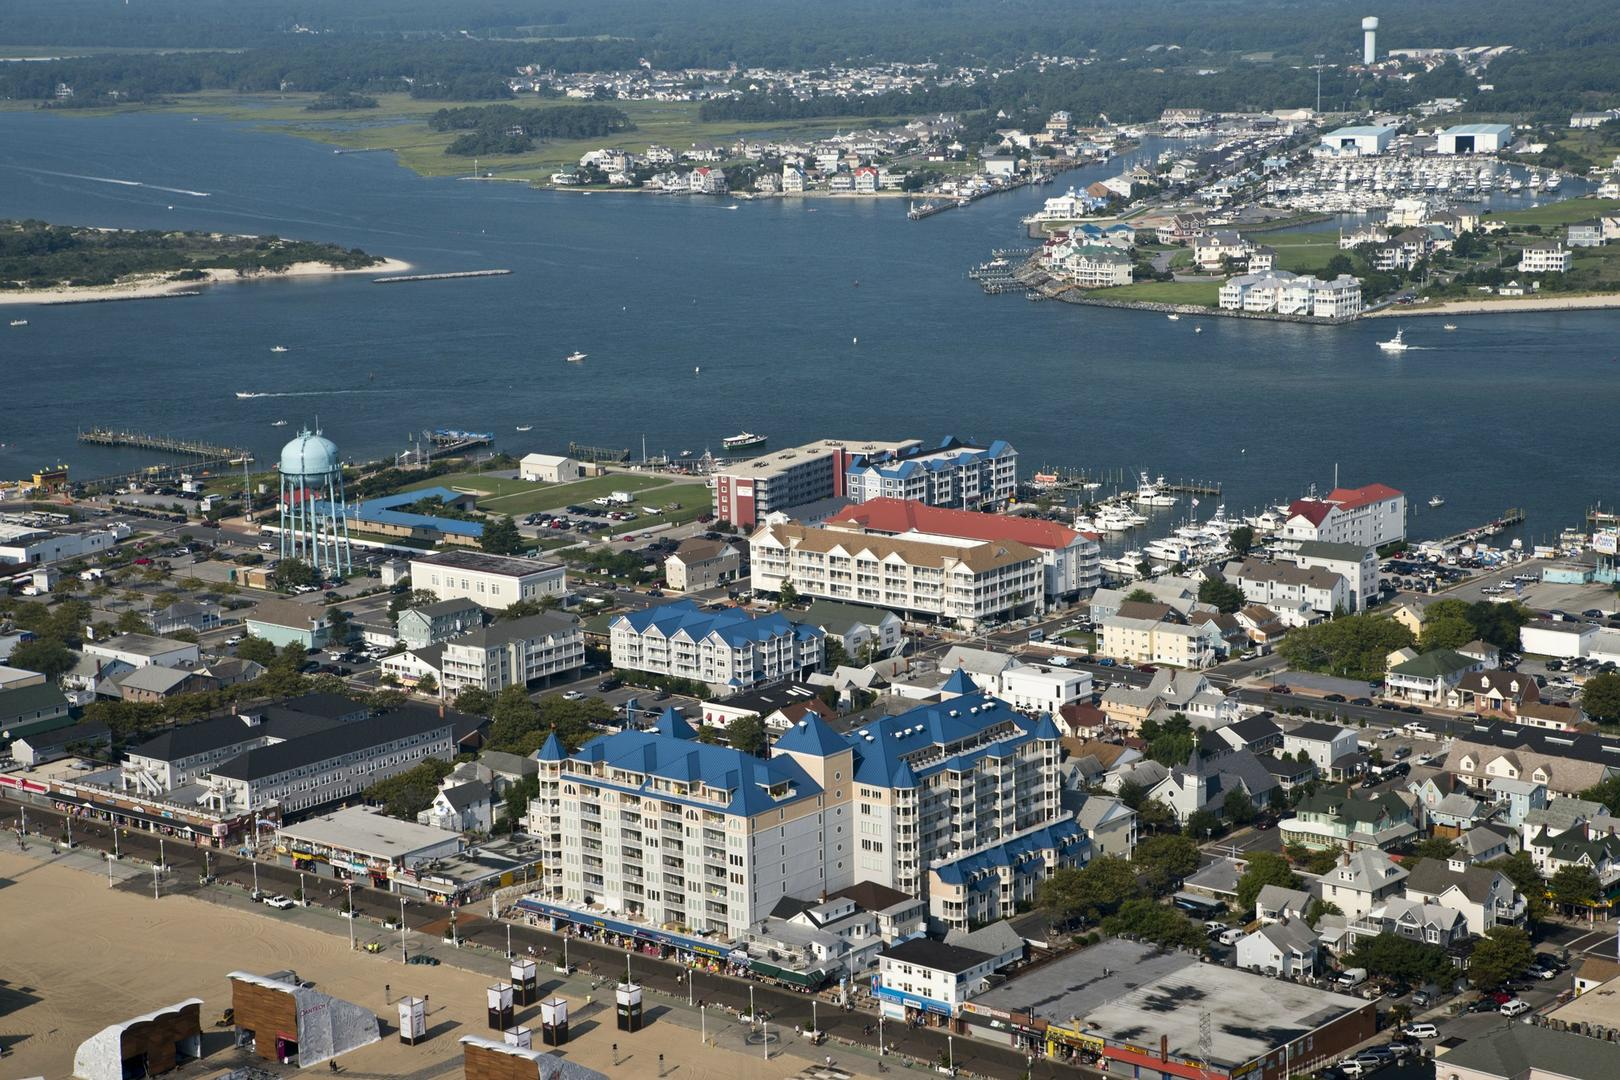 Aerial View of Belmont Towers on the Ocean City Boardwalk